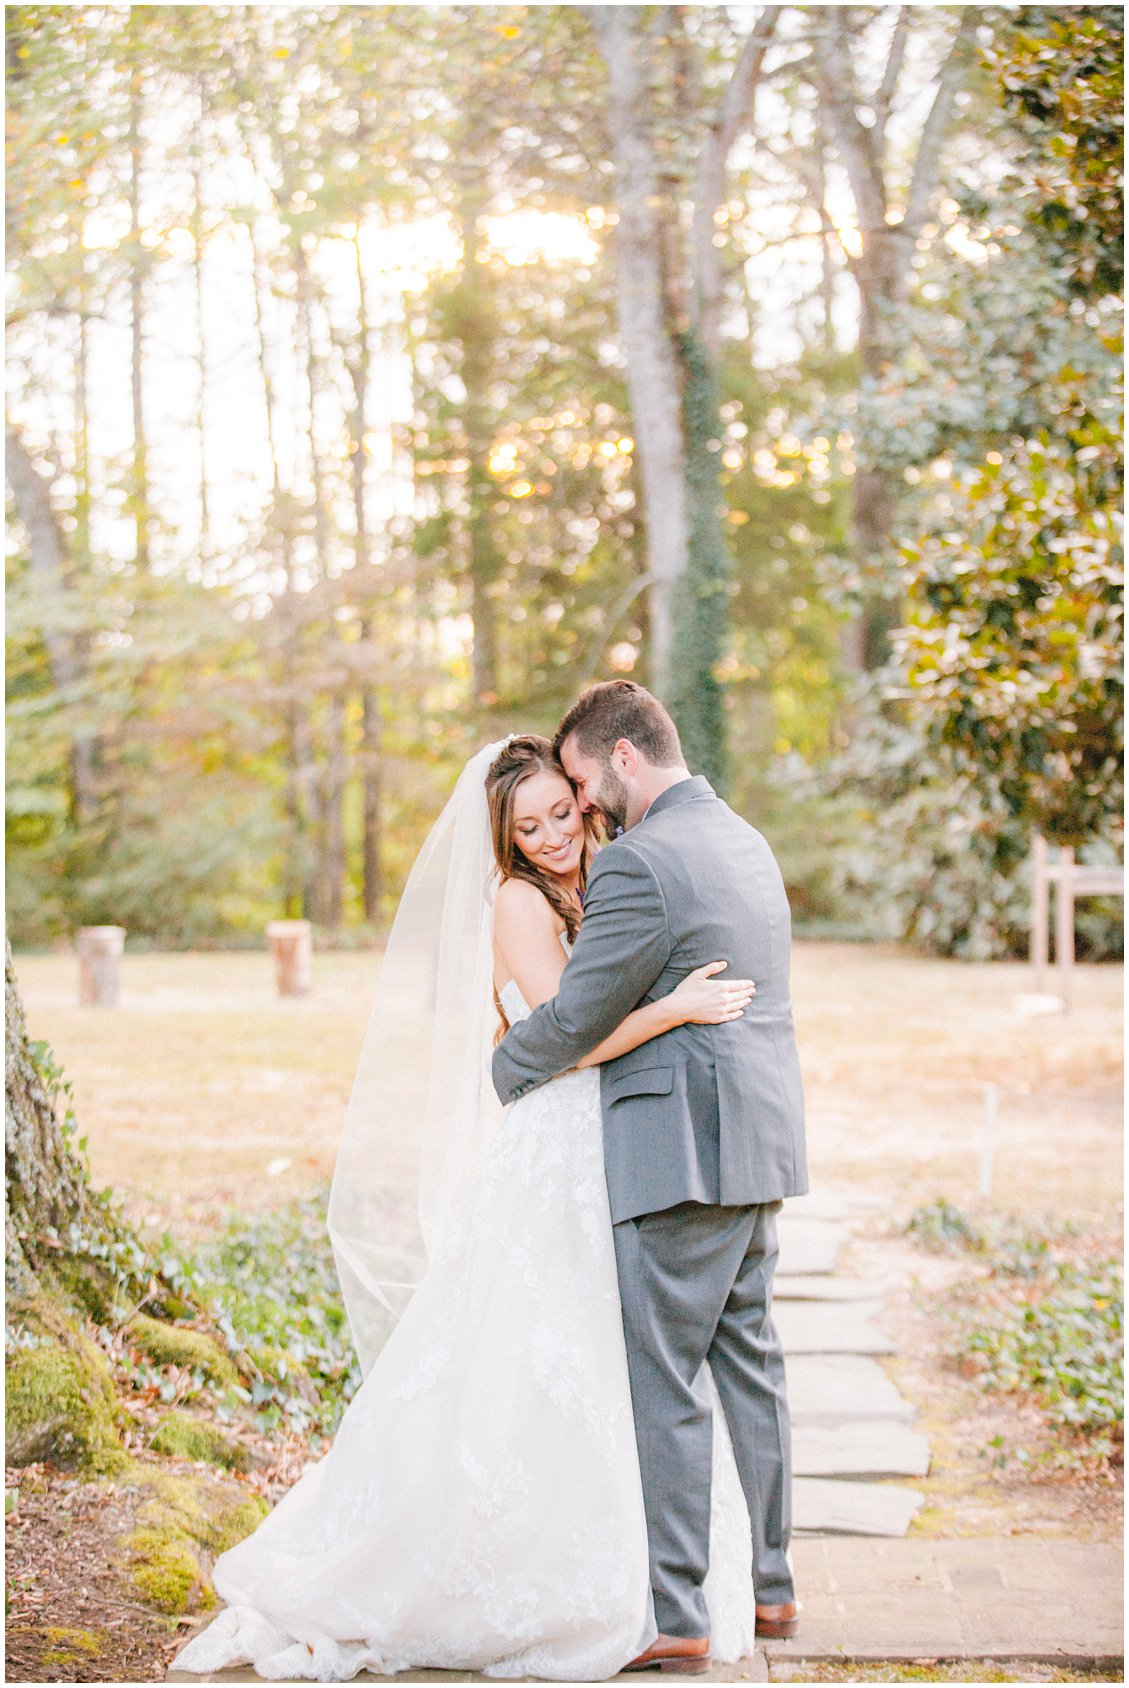 Romantic fall outdoor wedding at Seven Springs Farm & Manor captured by Tara & Stephen of Pattengale Photography